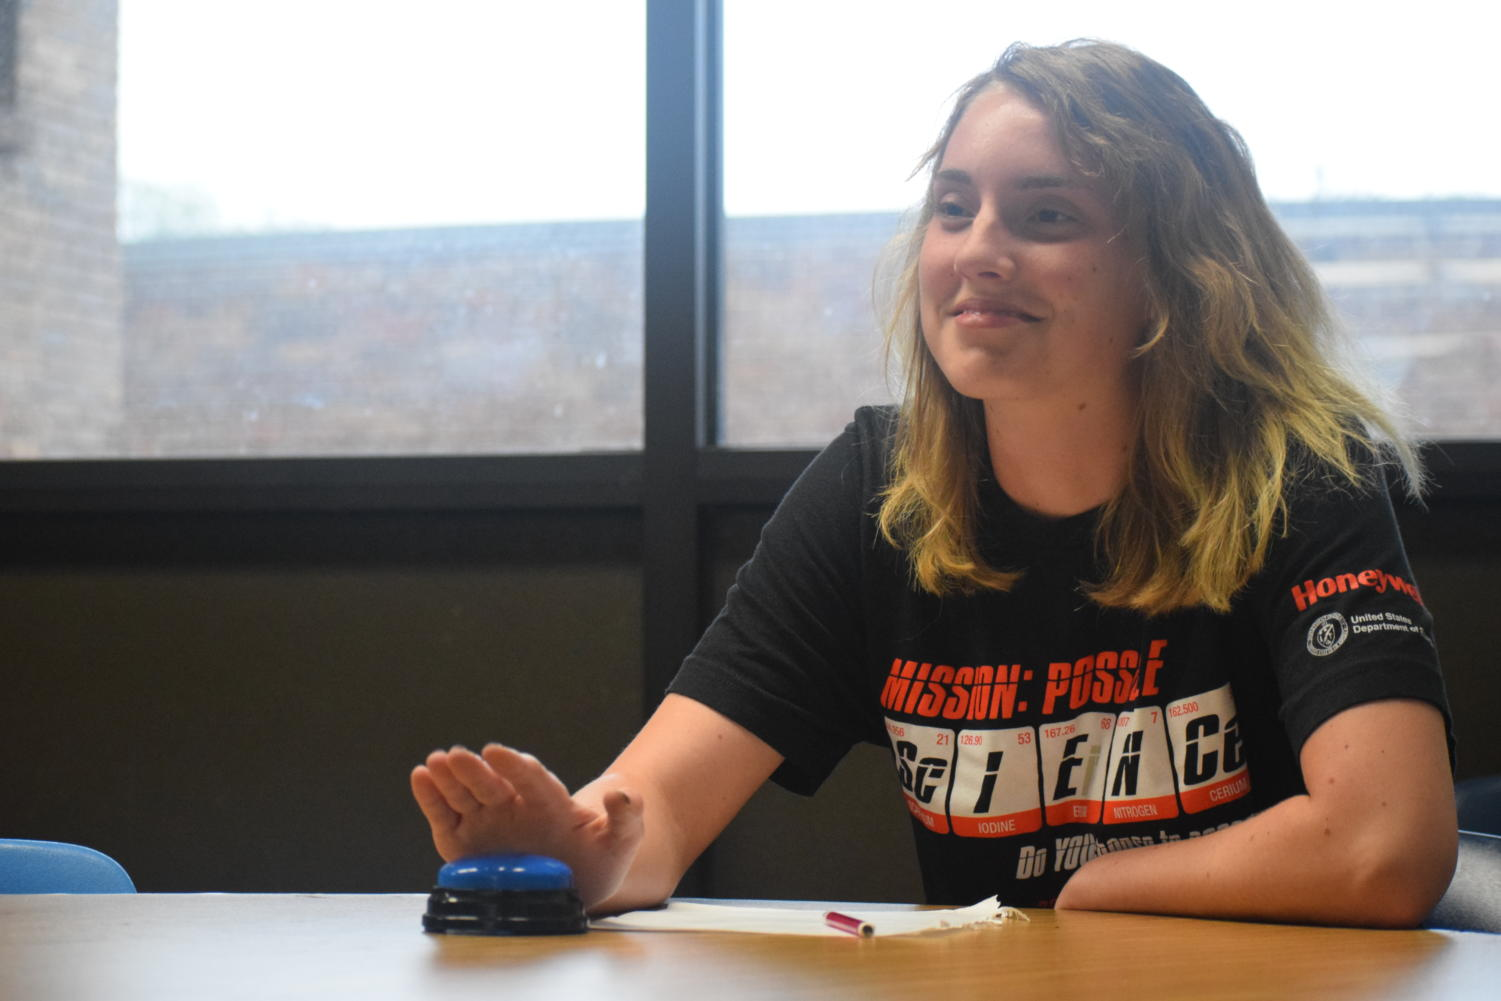 """With her right hand hovering over the buzzer, senior Lindsay Perrett answers questions in the science bowl. The team answered questions that concerned all branches of math and science. """"It was an exciting event for me to be a part of, and it benefitted me academically too,"""" Perrett said."""